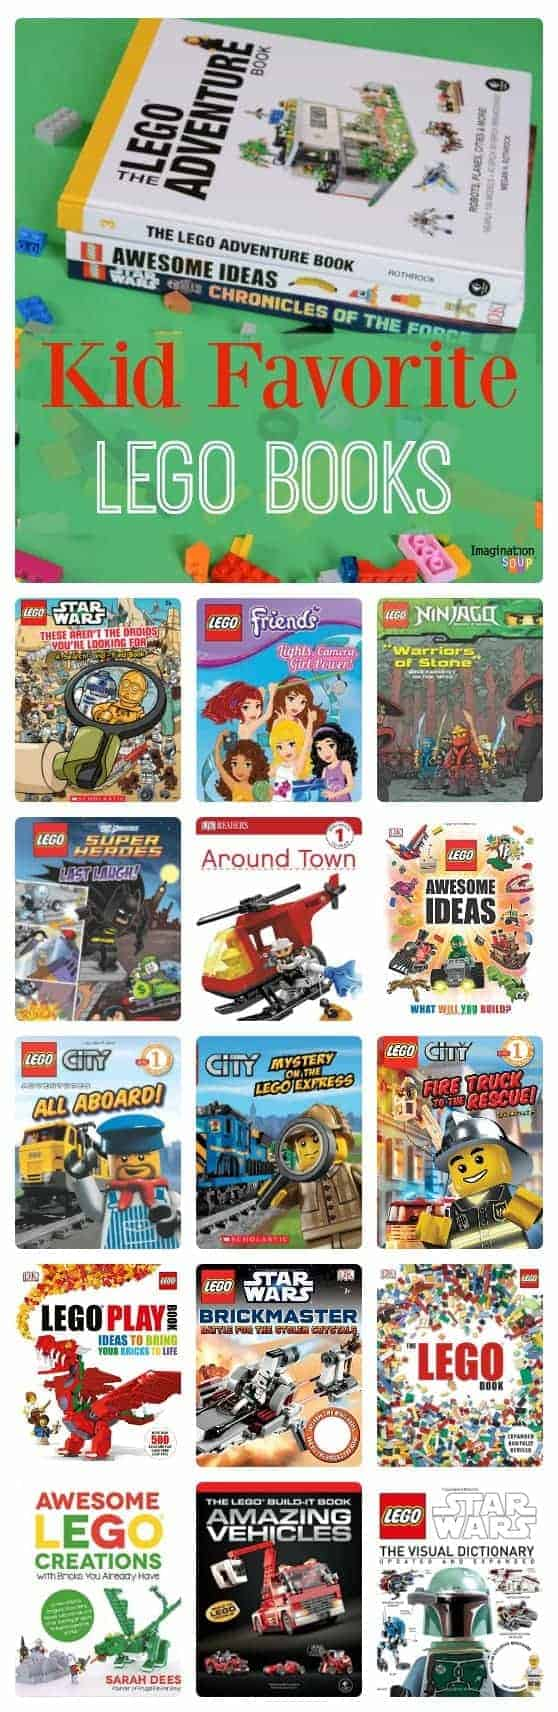 Kid Favorite LEGO Books